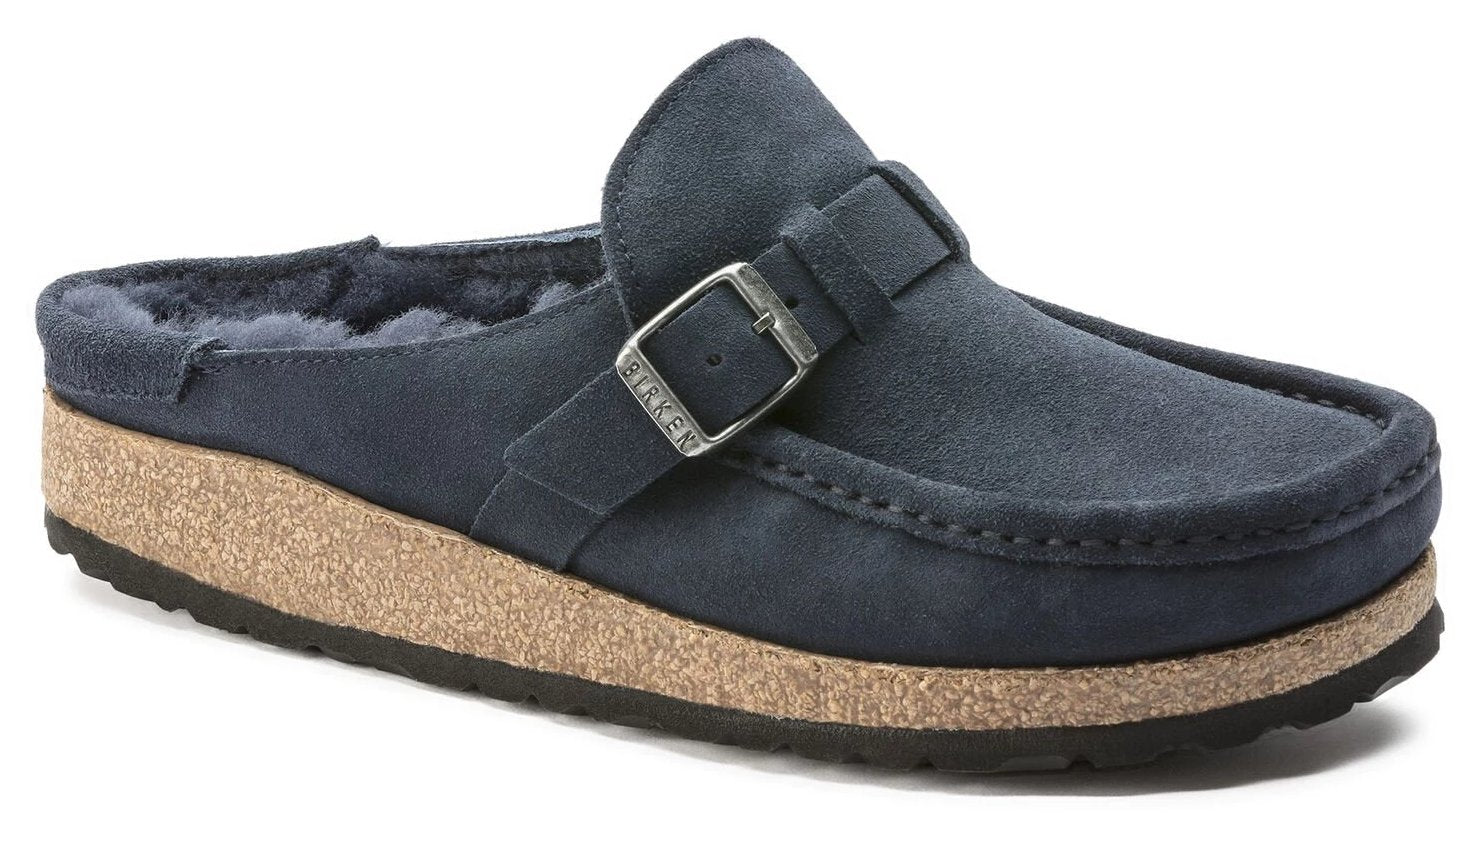 Buckley - Navy Suede Shearling